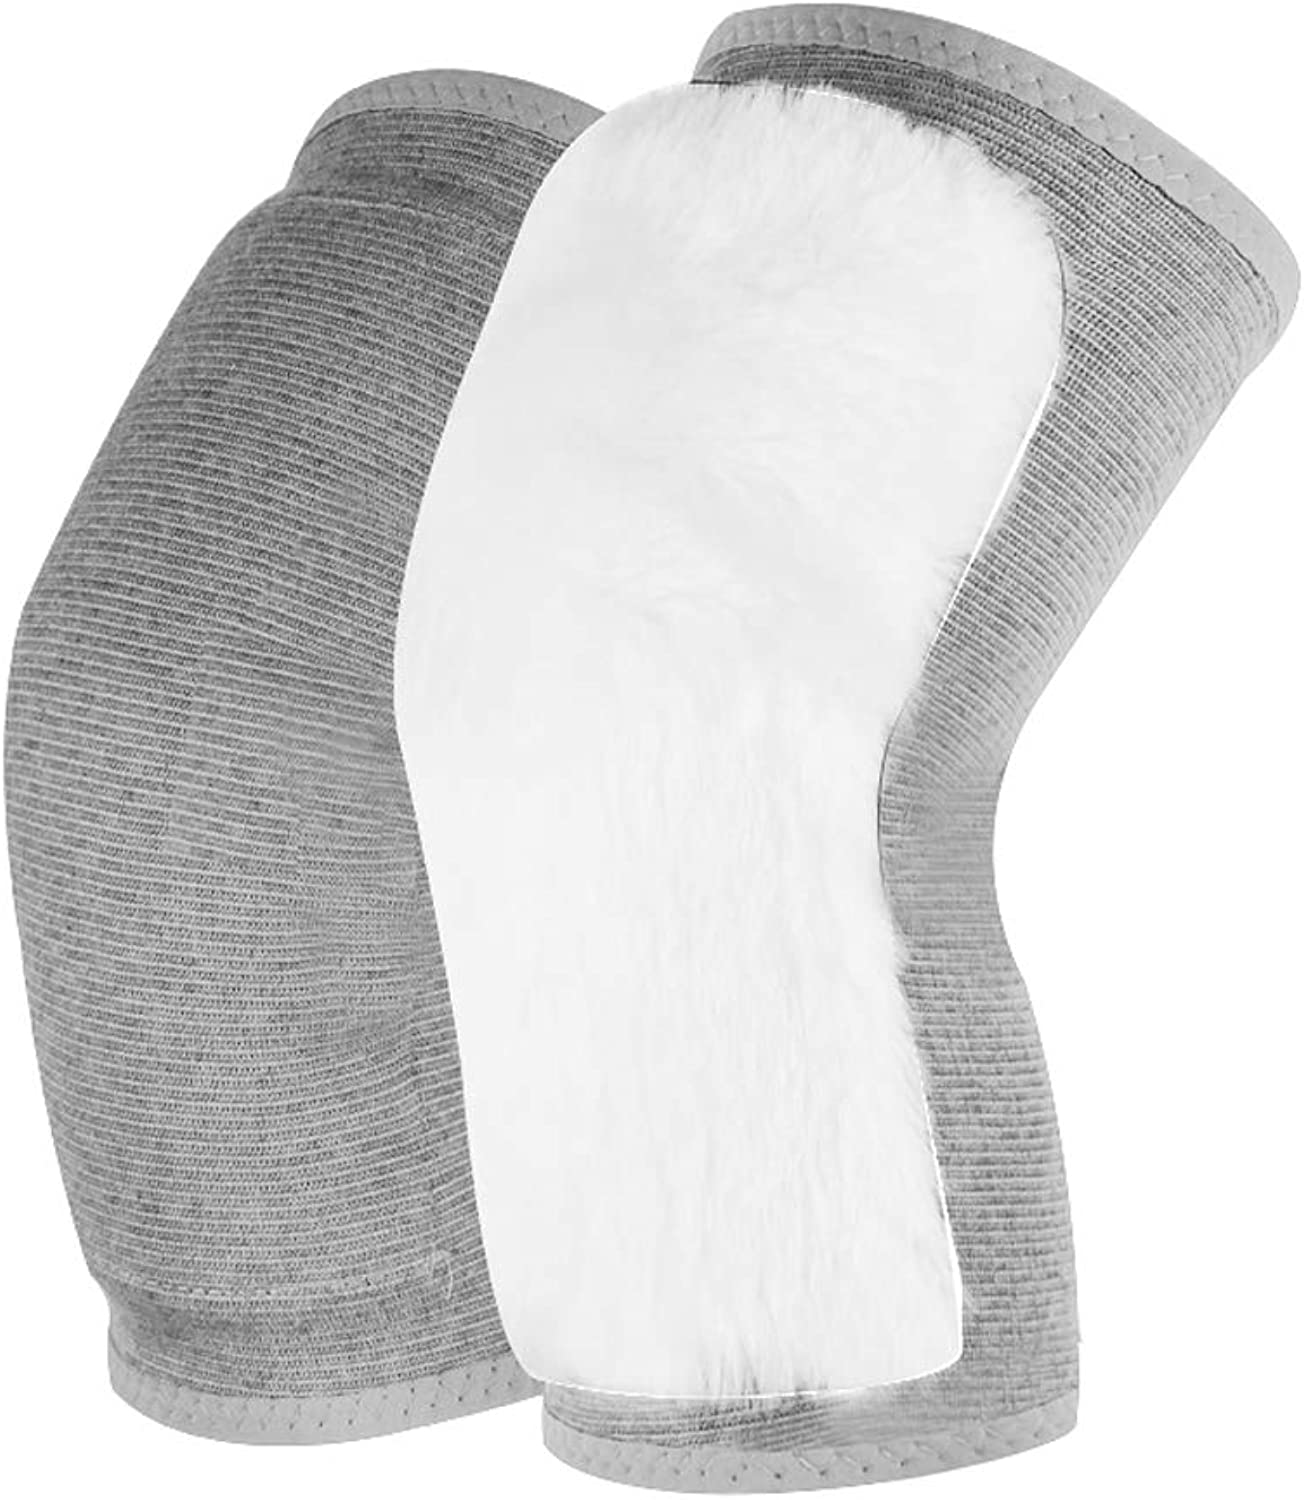 LBYMYB Wool Predection Knee Warm Elderly Cold Legs Female Male Autumn and Winter Thickened Joints Cold and Cold Kneepad (color   Grey, Size   M)